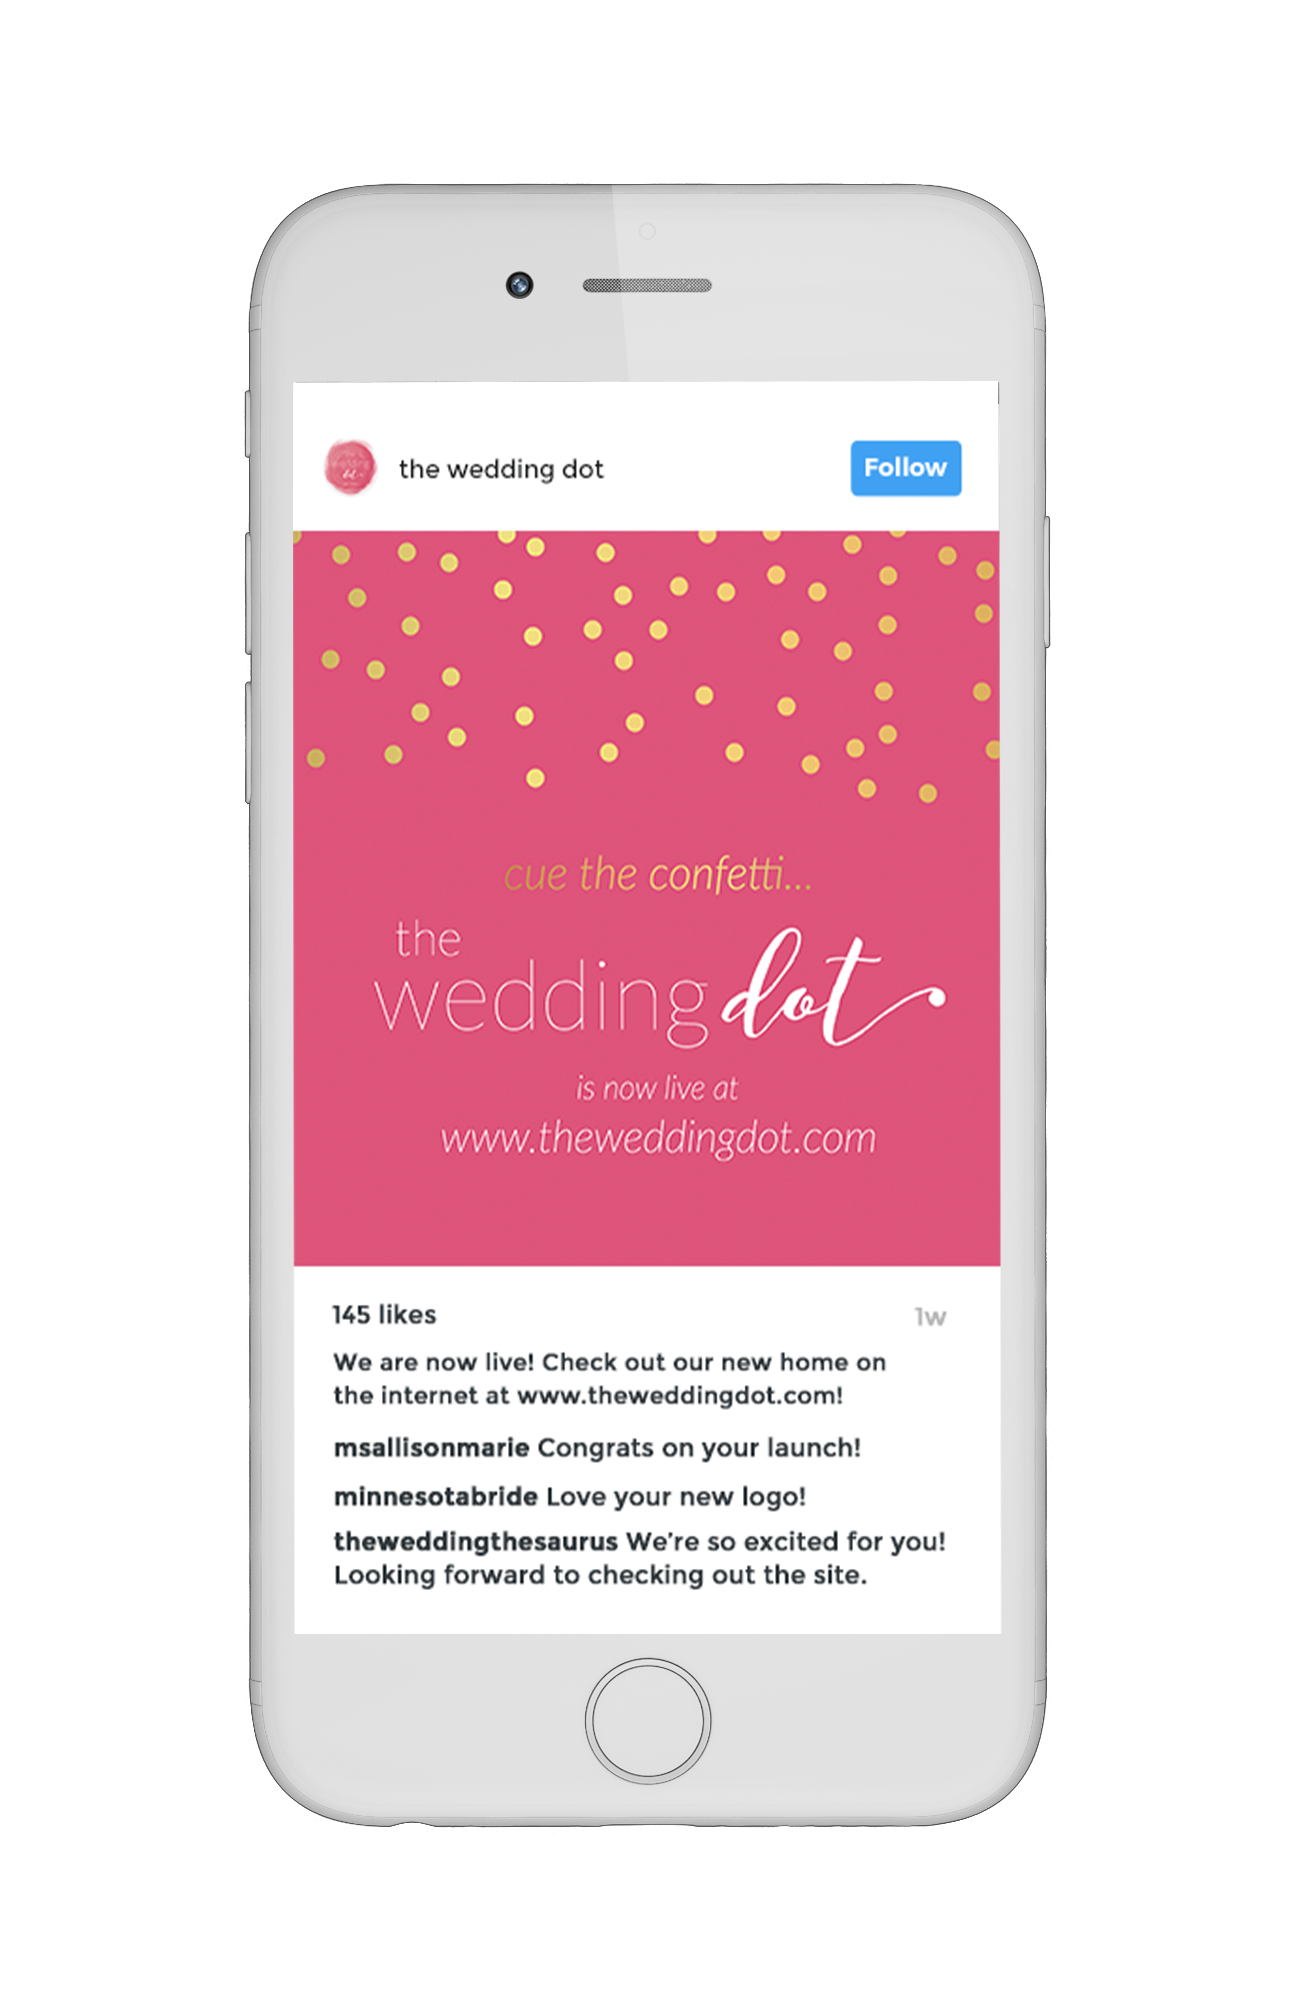 The Wedding Dot Instagram Image Brand Launch Design